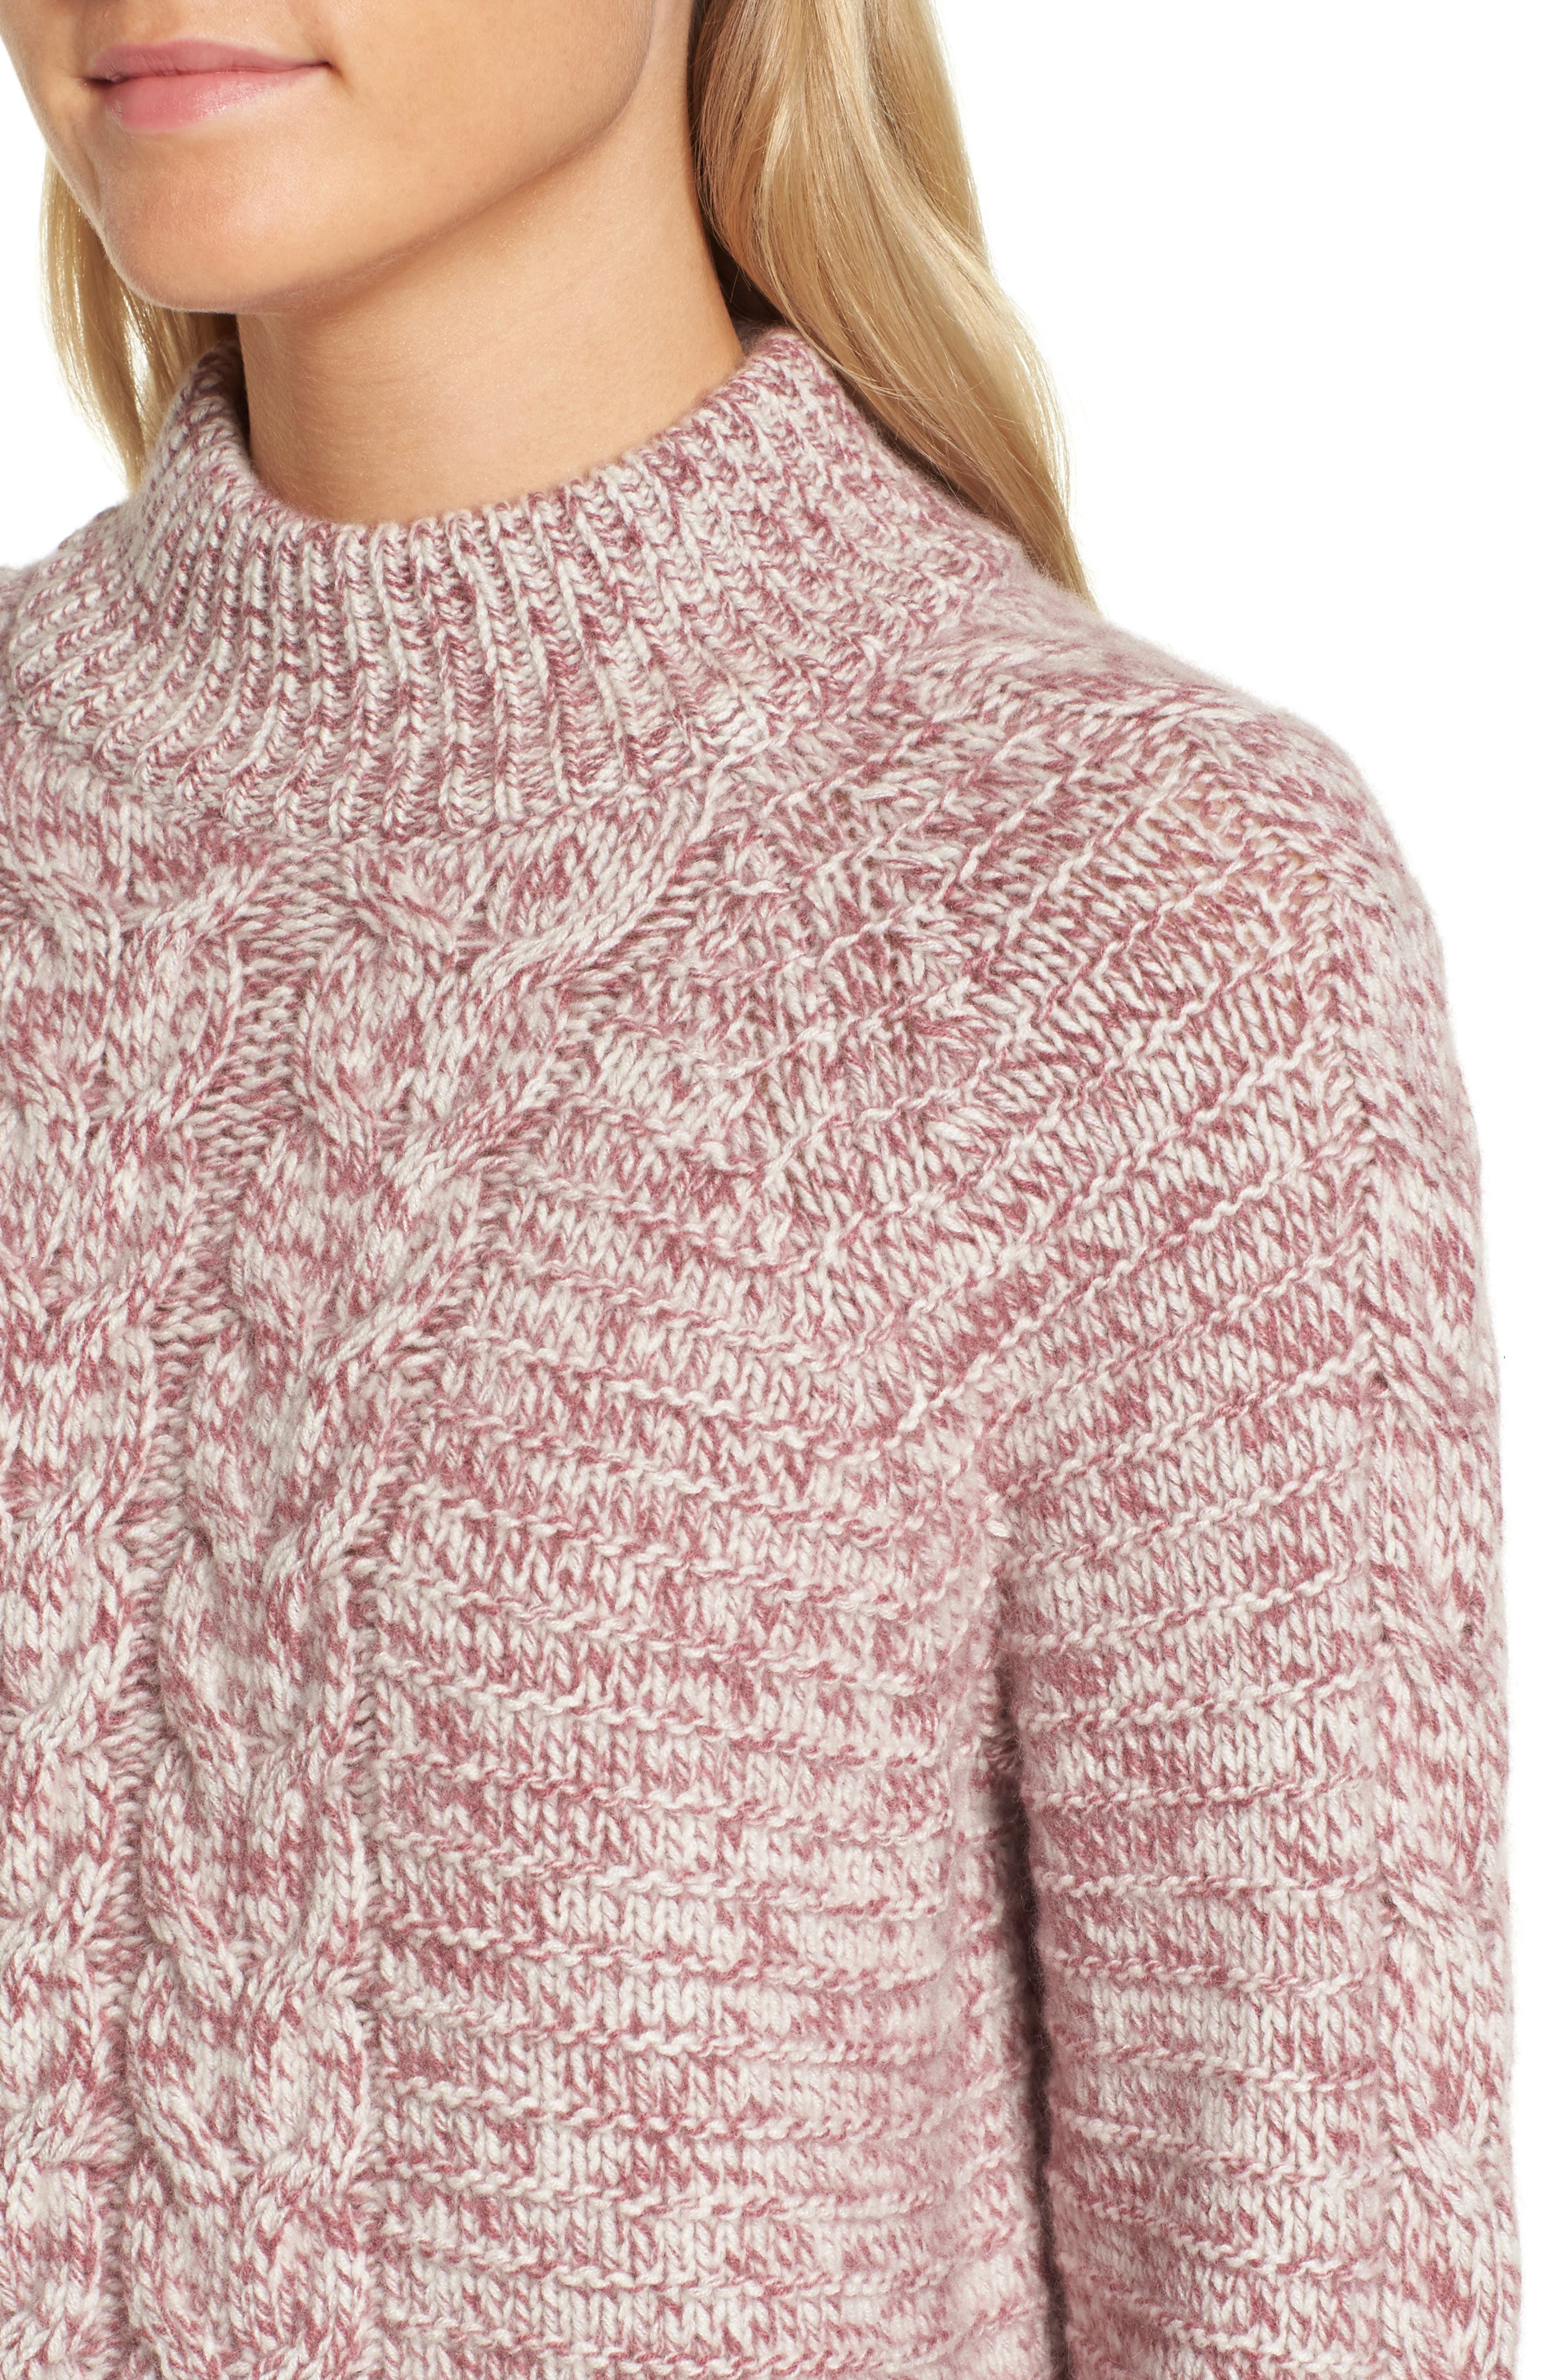 Cashmere Cable Knit Sweater,                             Alternate thumbnail 4, color,                             938